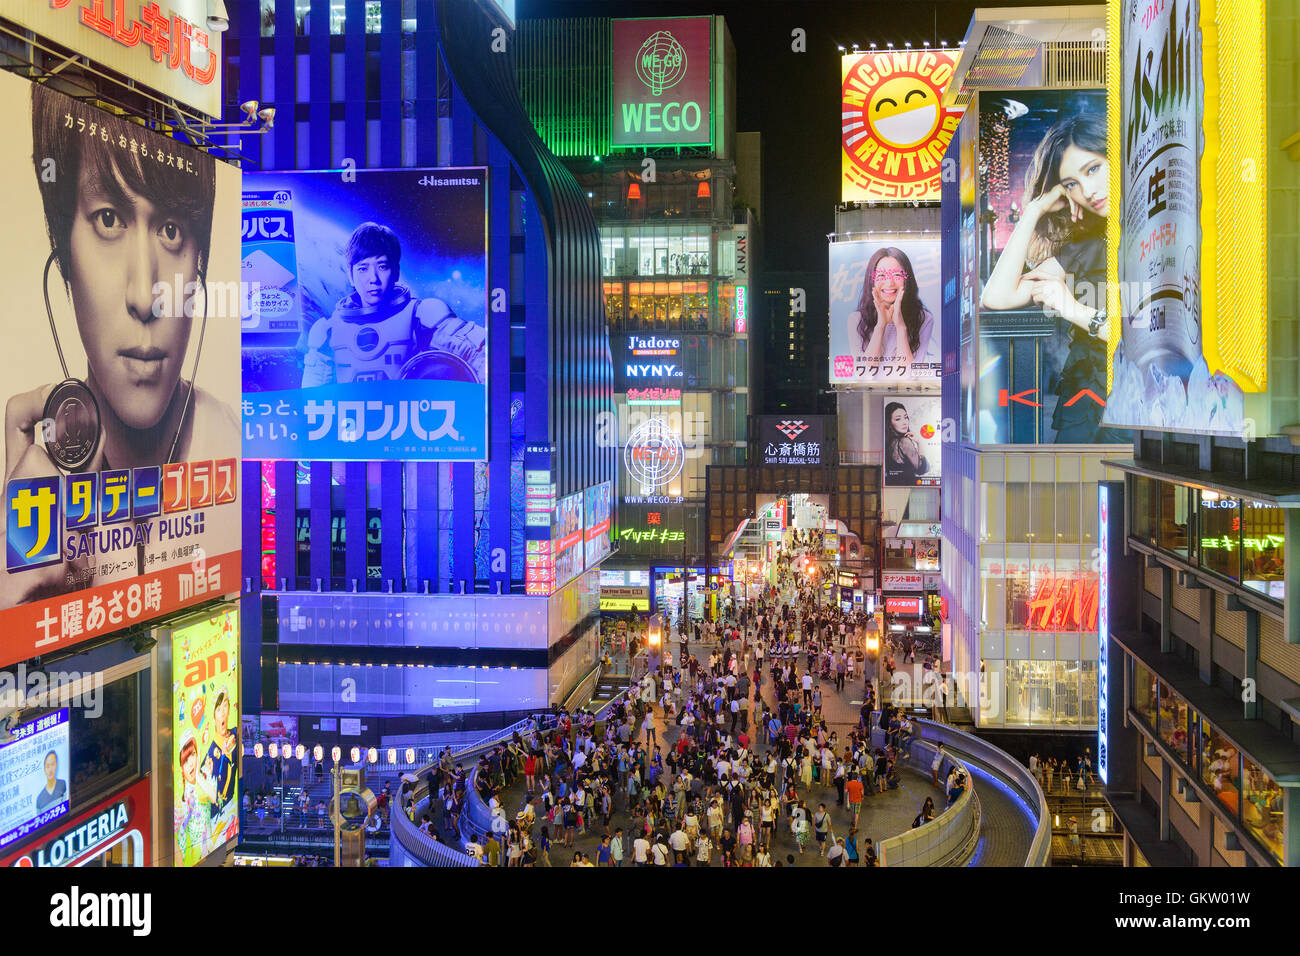 OSAKA, JAPAN - AUGUST 16, 2015: Pedestrians on Ebisu Bridge pass over Dotonbori Canal in the Namba District. The - Stock Image